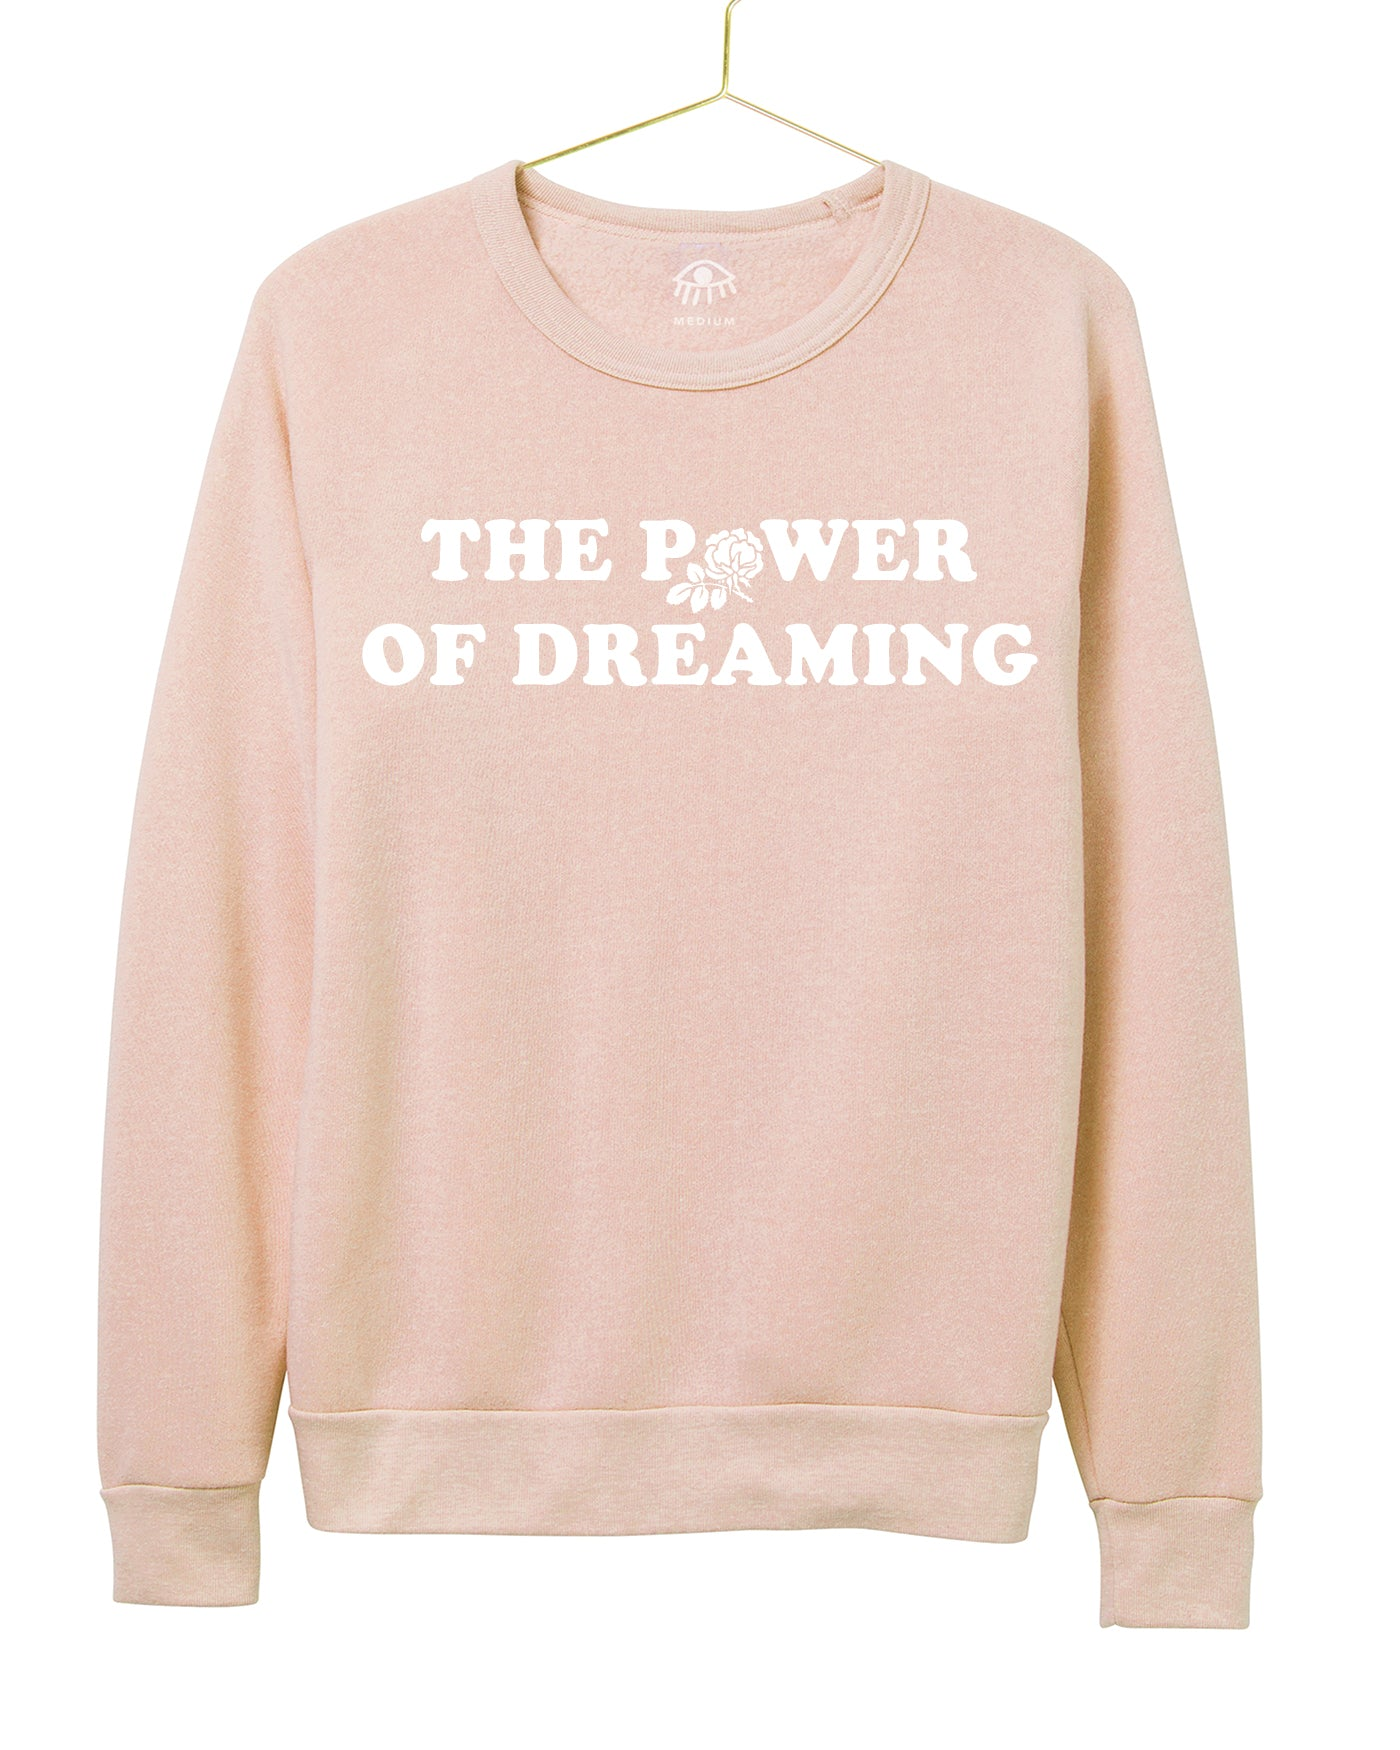 The power of dreaming Women's Crewneck